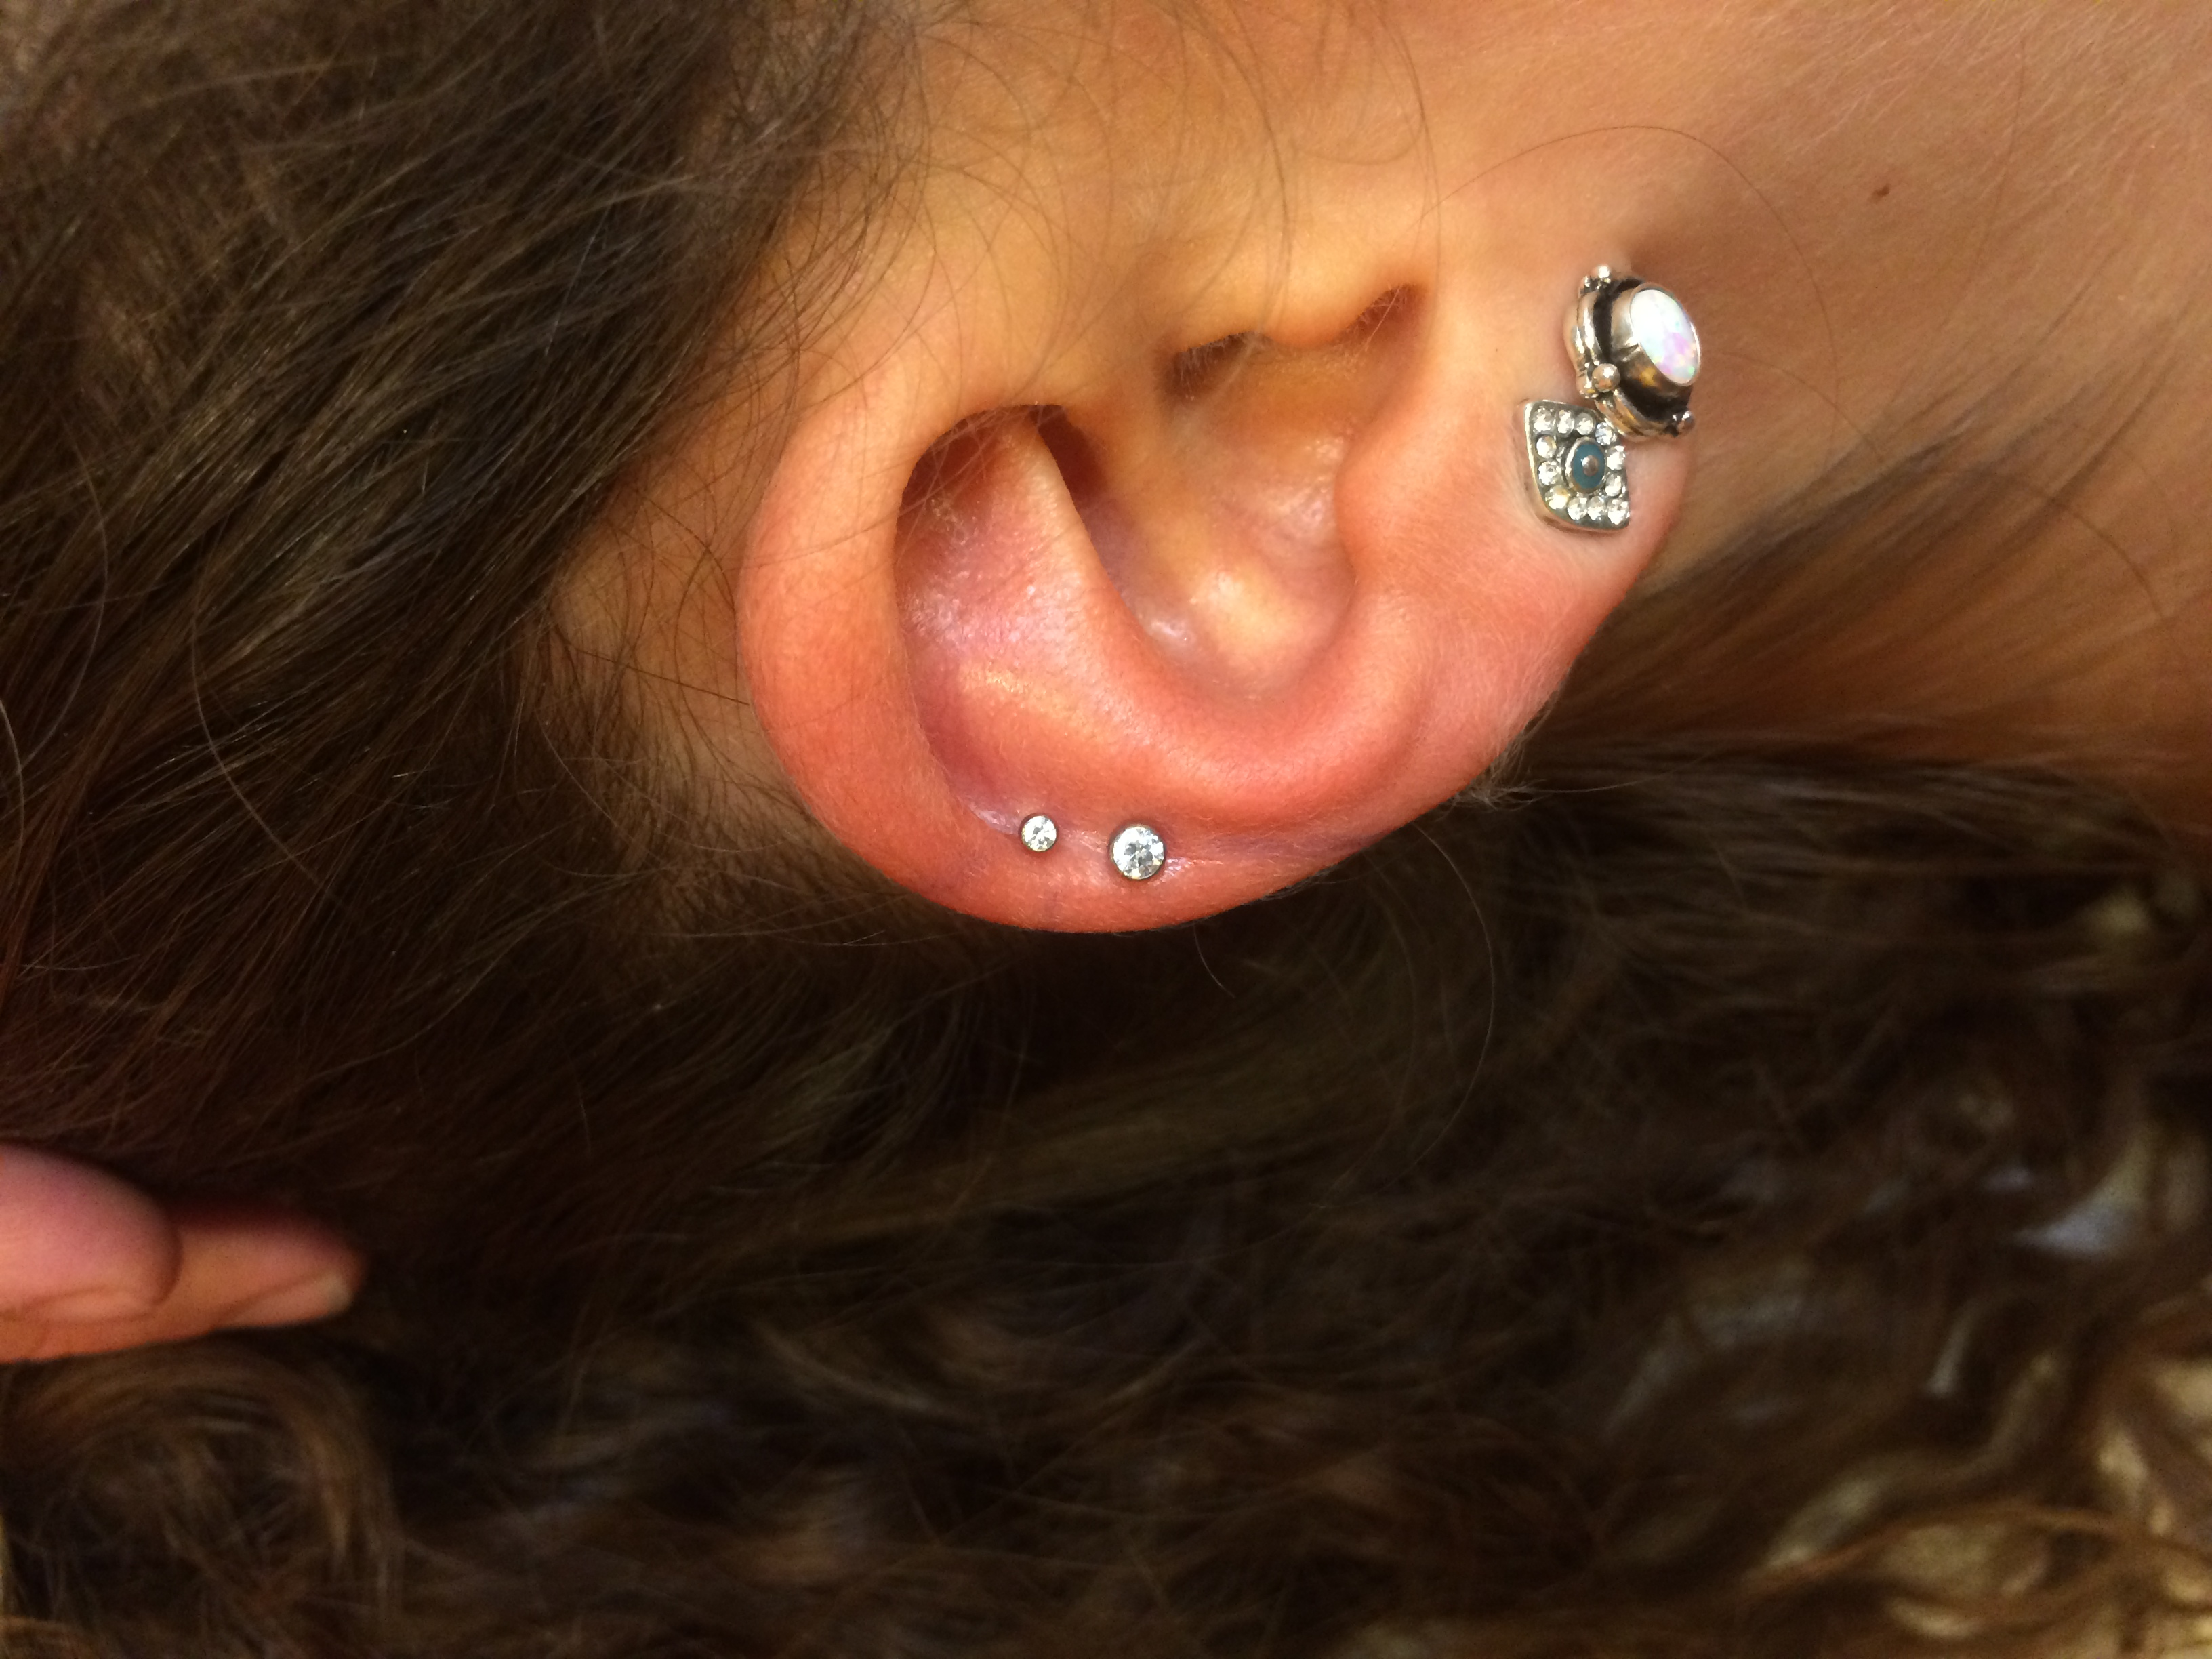 helix ear piercing, jewelry